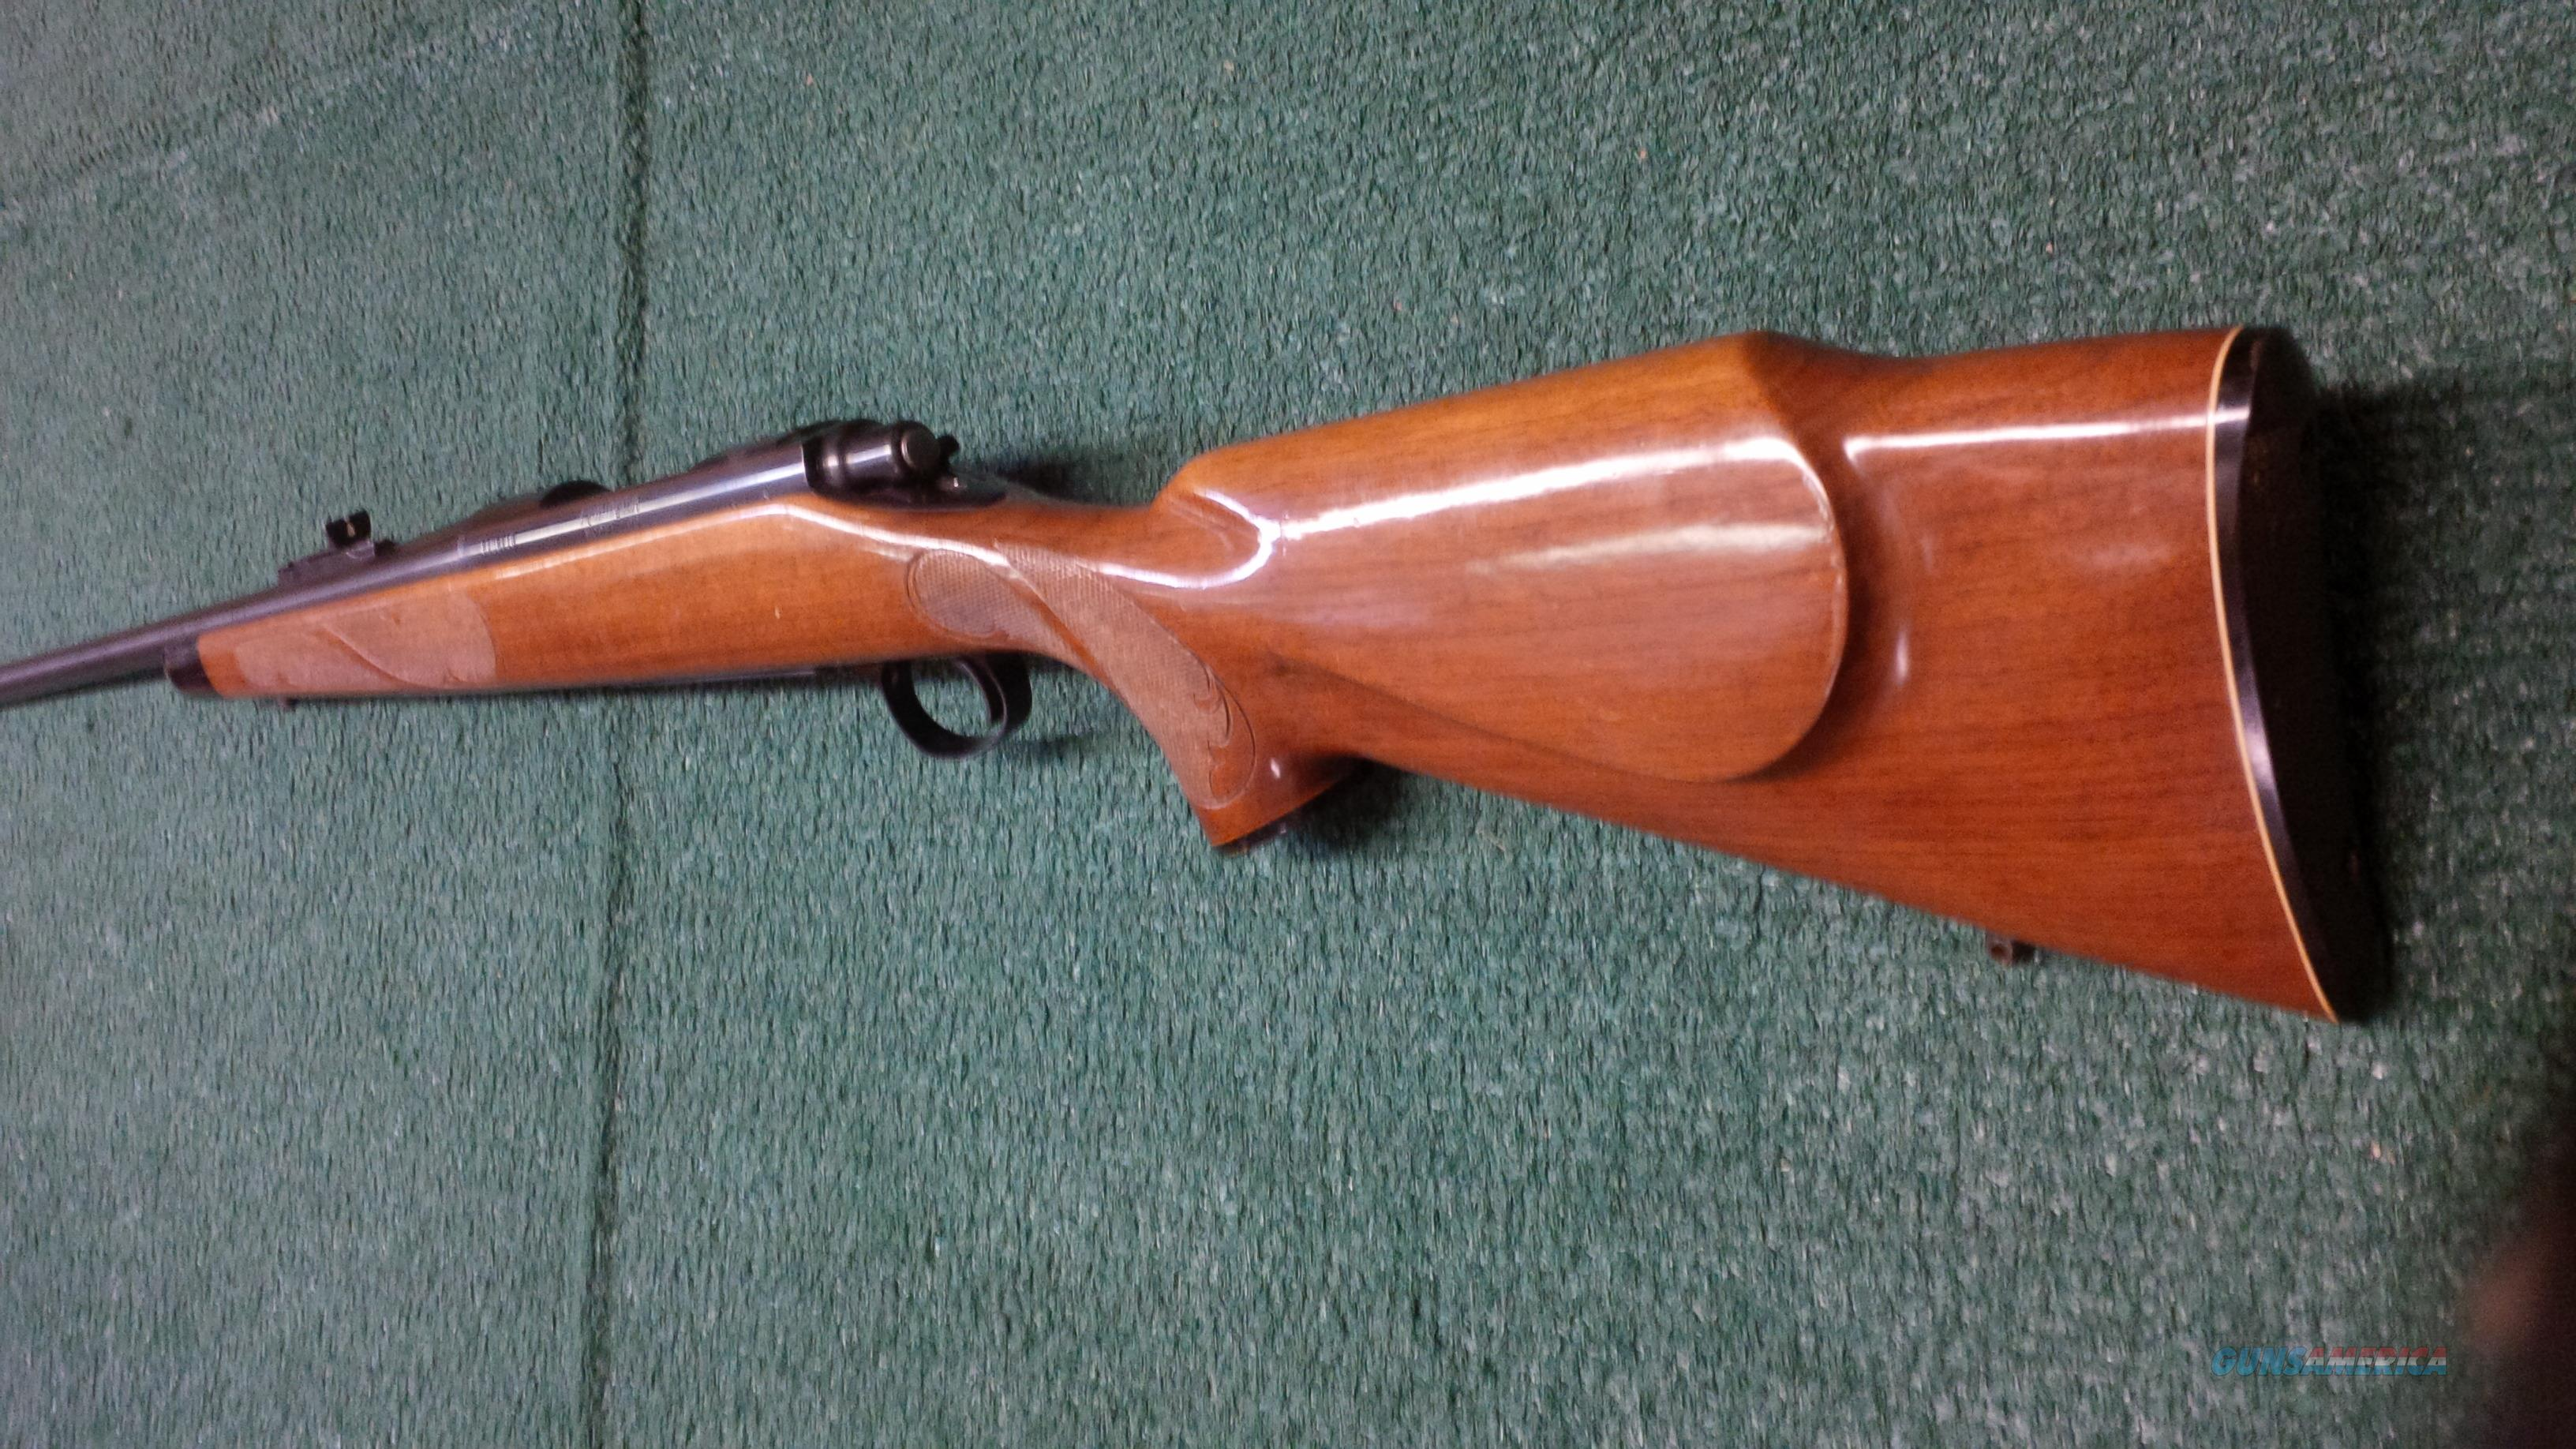 Remington 700 BDL .270 Win Early Model Bolt Action Rifle  Guns > Rifles > Remington Rifles - Modern > Model 700 > Sporting